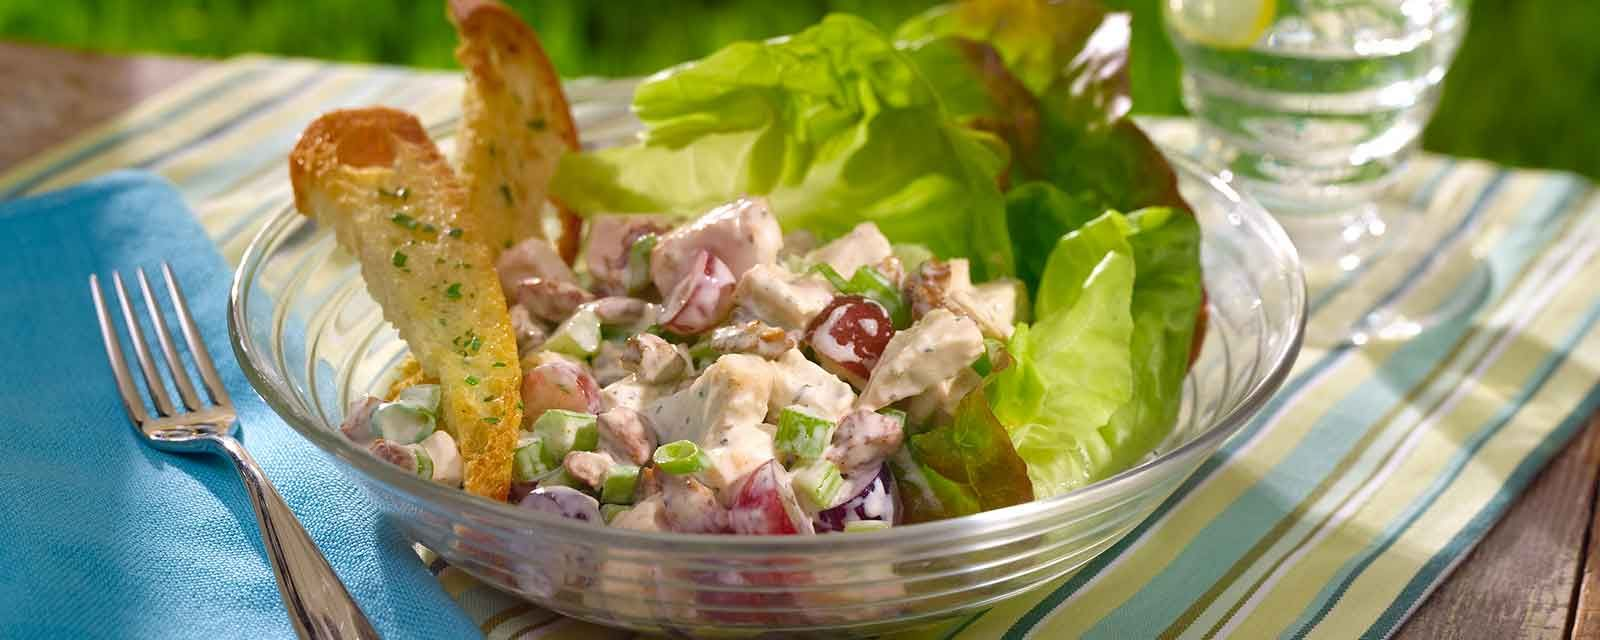 1. In a large salad bowl, toss the lettuce, pears, apples, grapes, celery, blue cheese, together with the dressing until lightly coated. Garnish with the walnuts and serve.